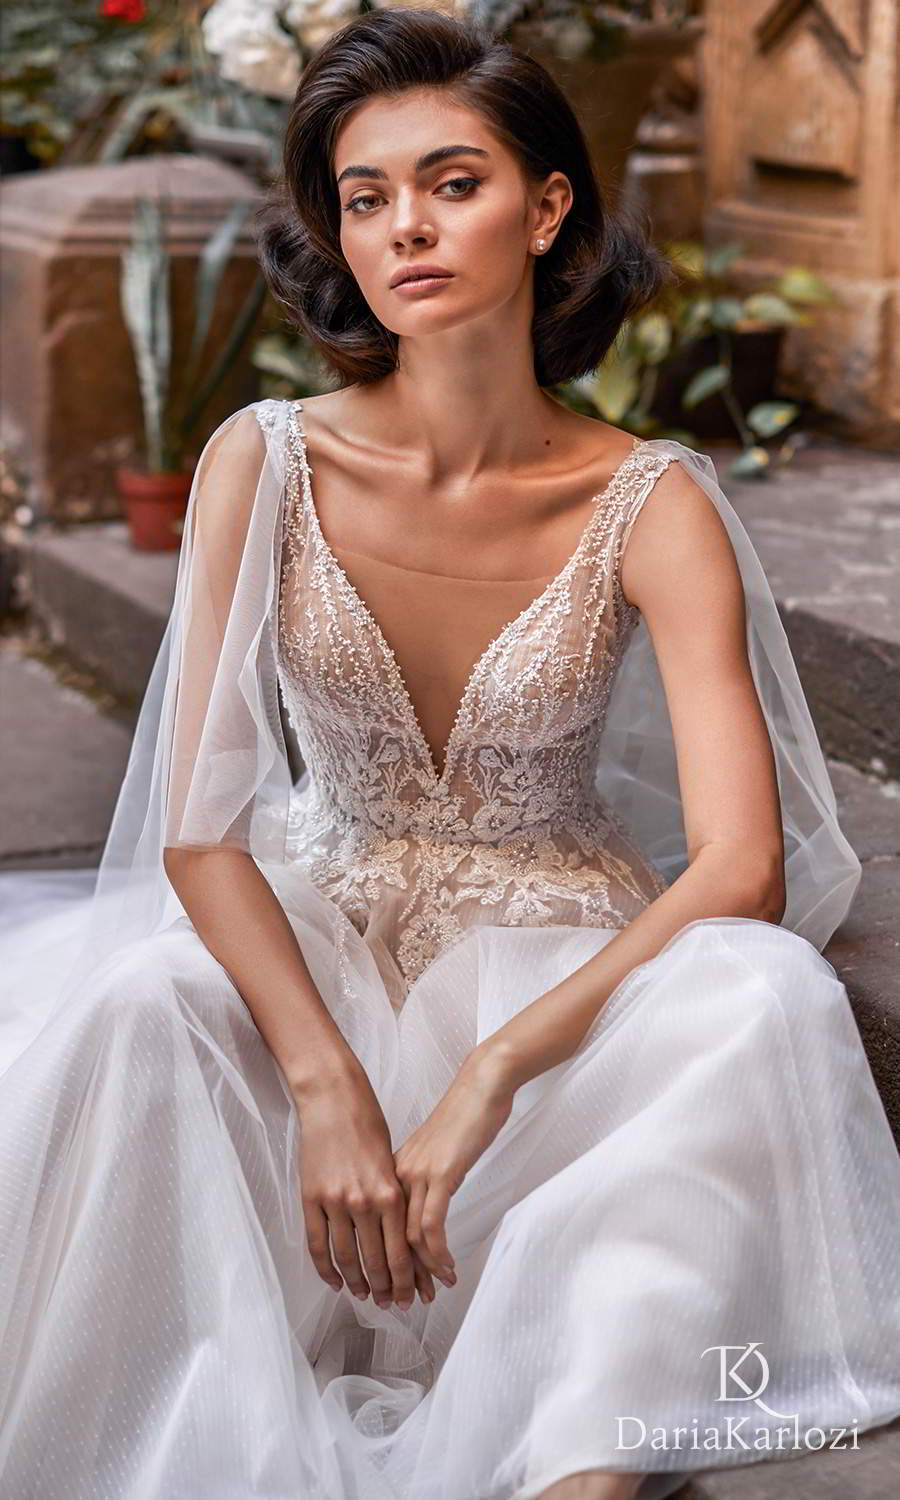 daria karlozi 2021 graceful dream bridal sleeveless straps plunging v neckline heavily embellished bodice a line ball gown wedding dress sweep train v back (euphoria) zv